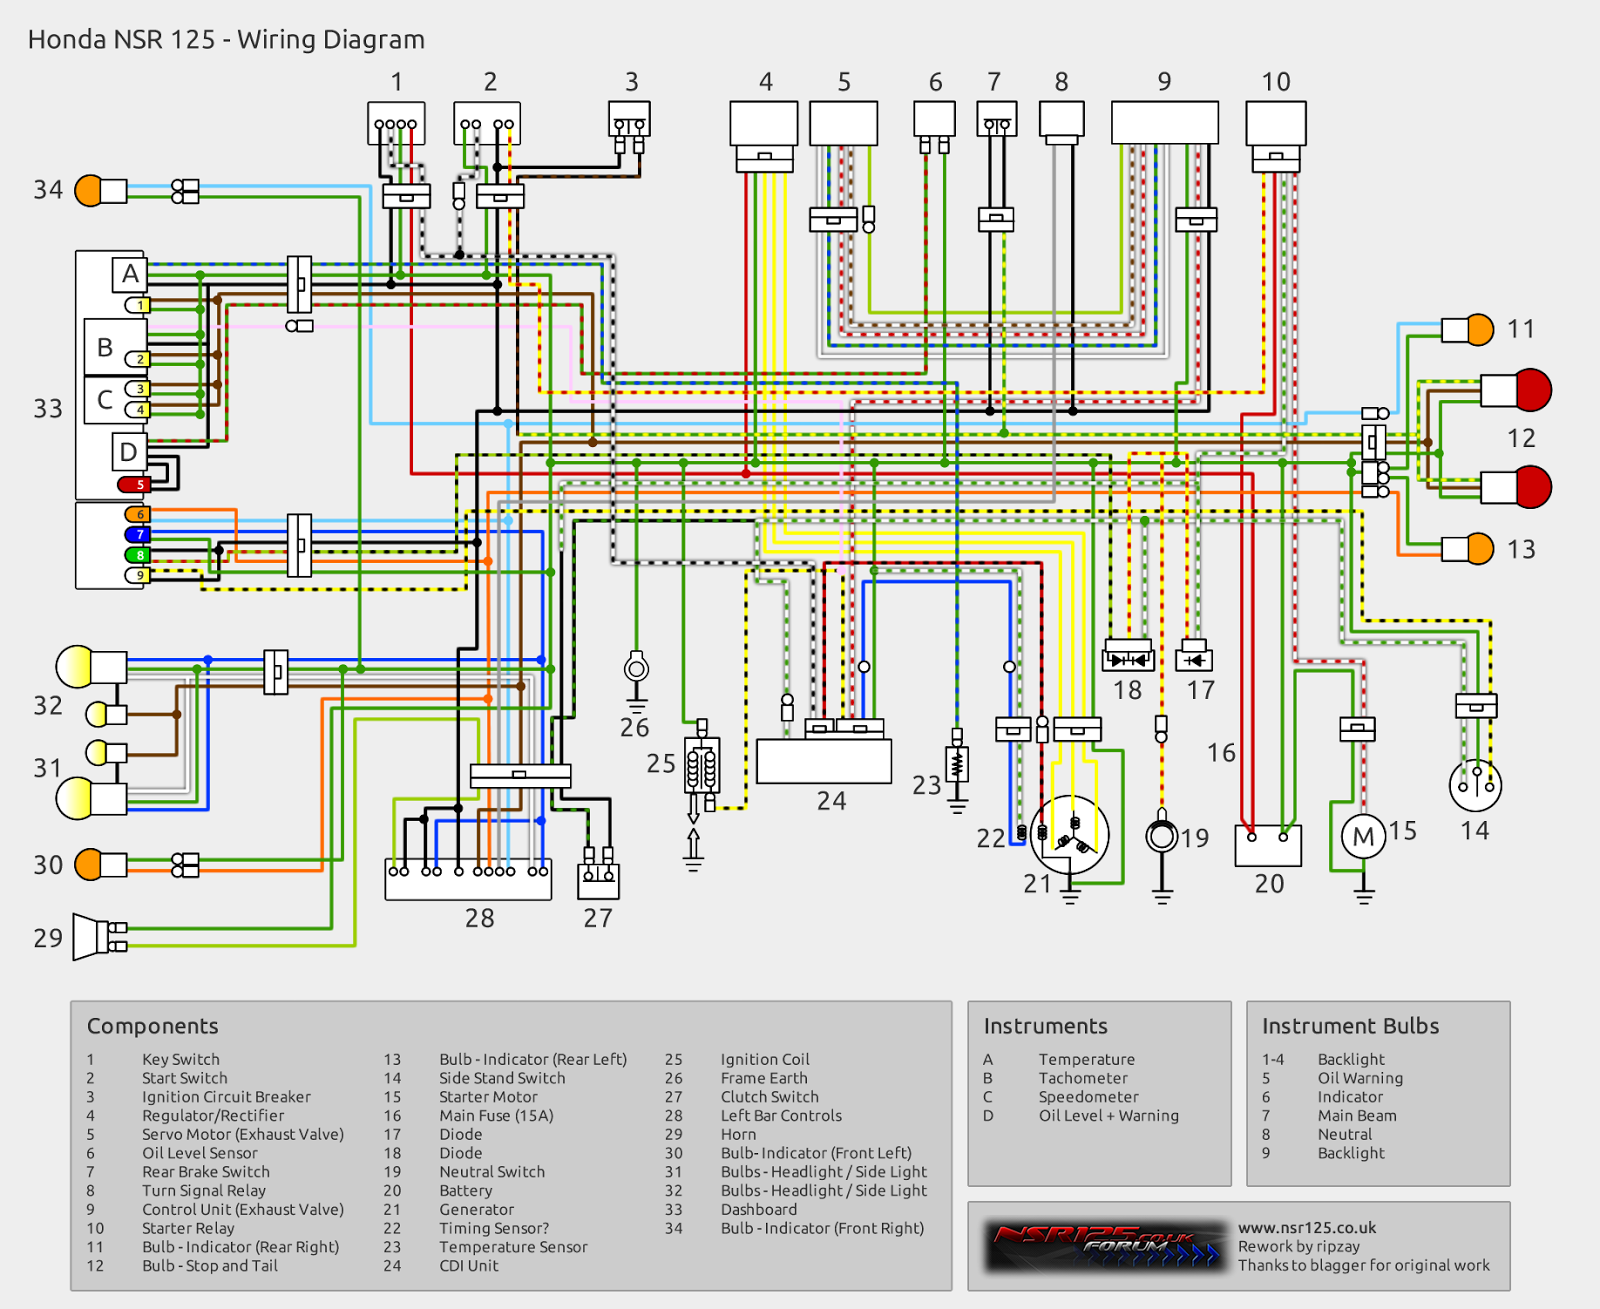 Wiring Diagram Honda NSR Series